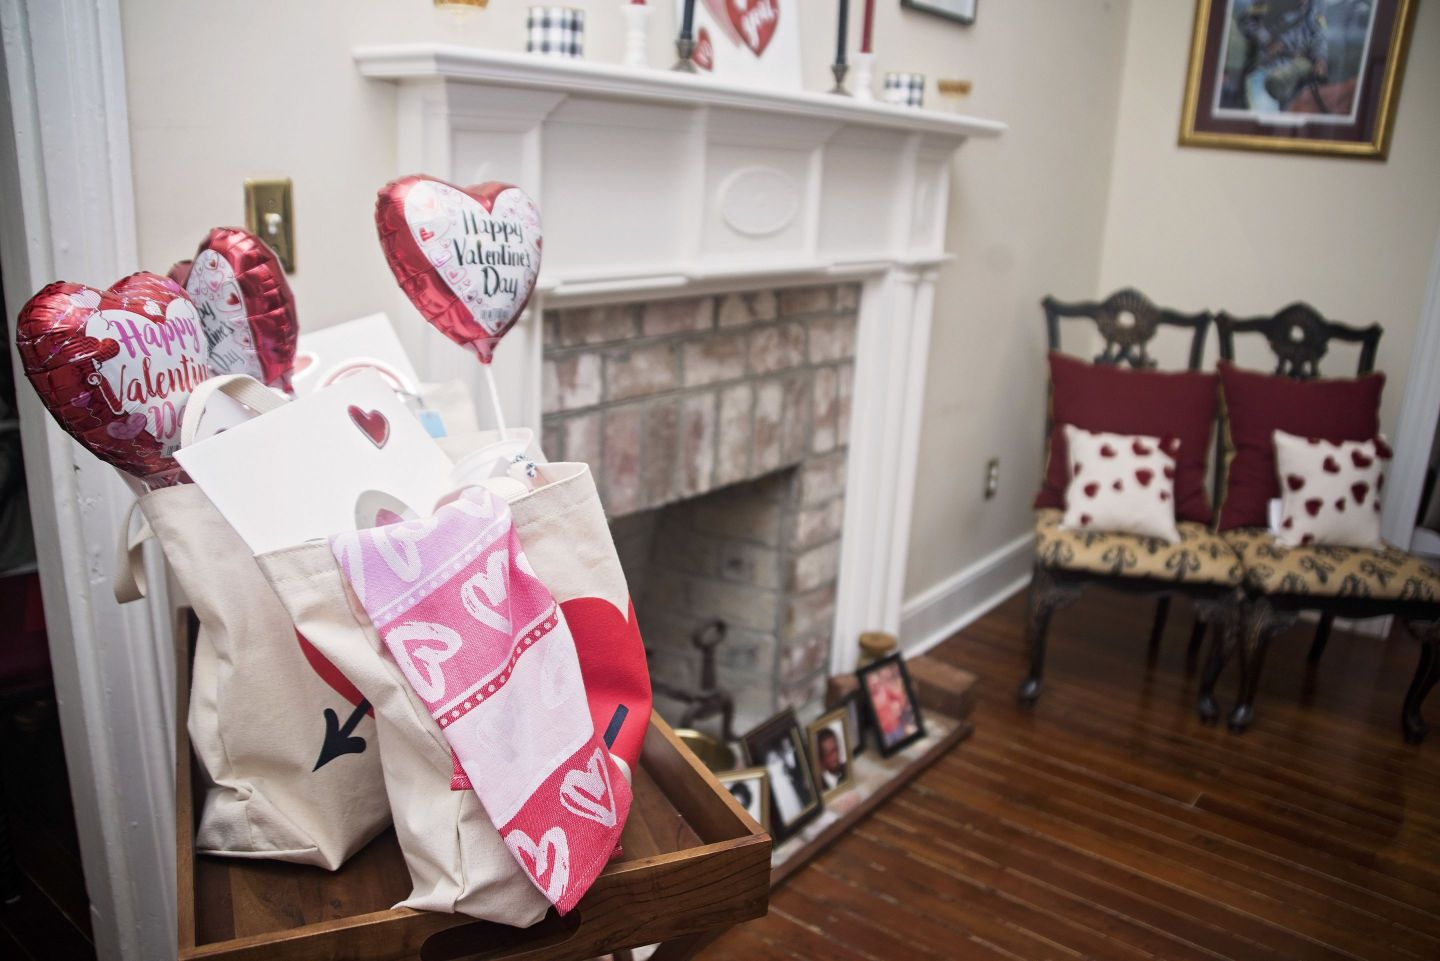 DSC_5422-2-1440x961 Tips for Hosting a Valentine's Day Soiree from Black Southern Belle